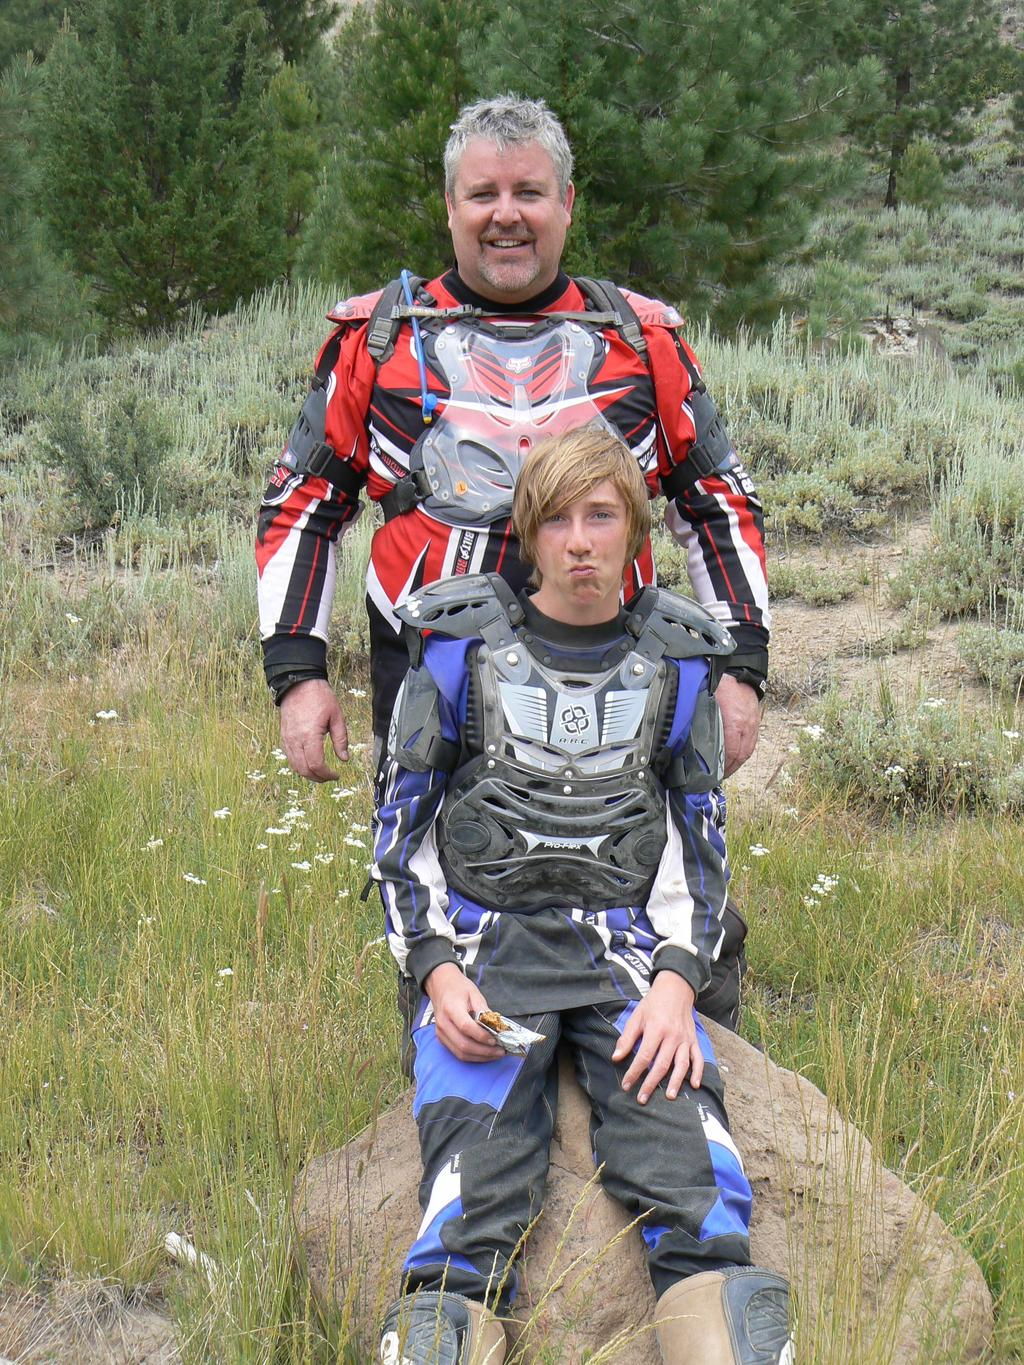 Boca Reservoir OHV Camping/Riding report | South Bay Riders